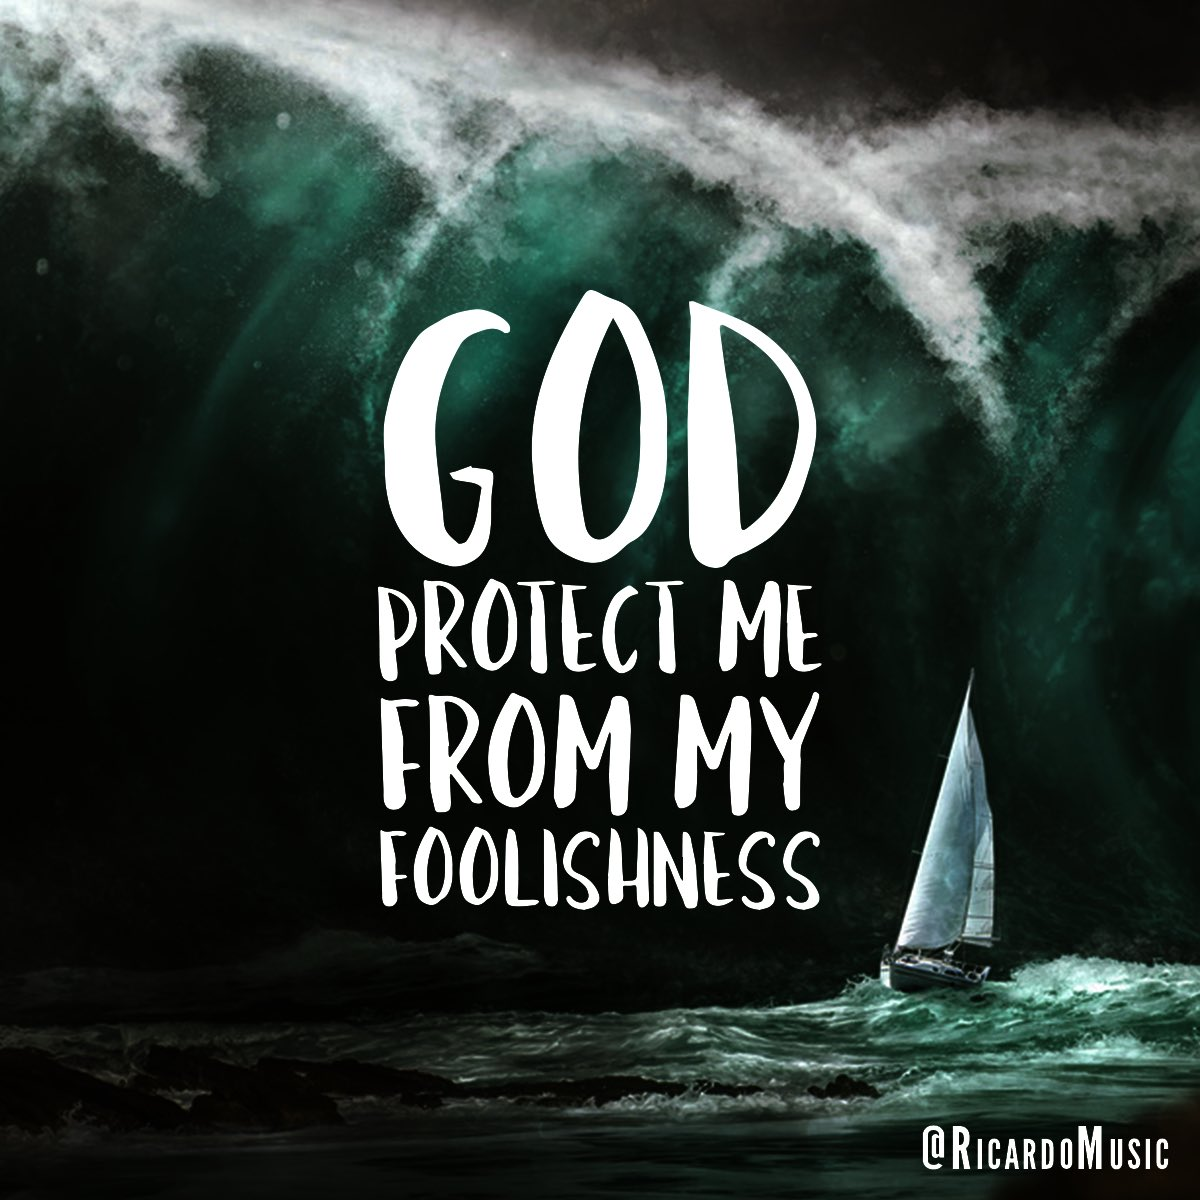 God, protect me from my foolishness. https://t.co/WlMhW2pILf